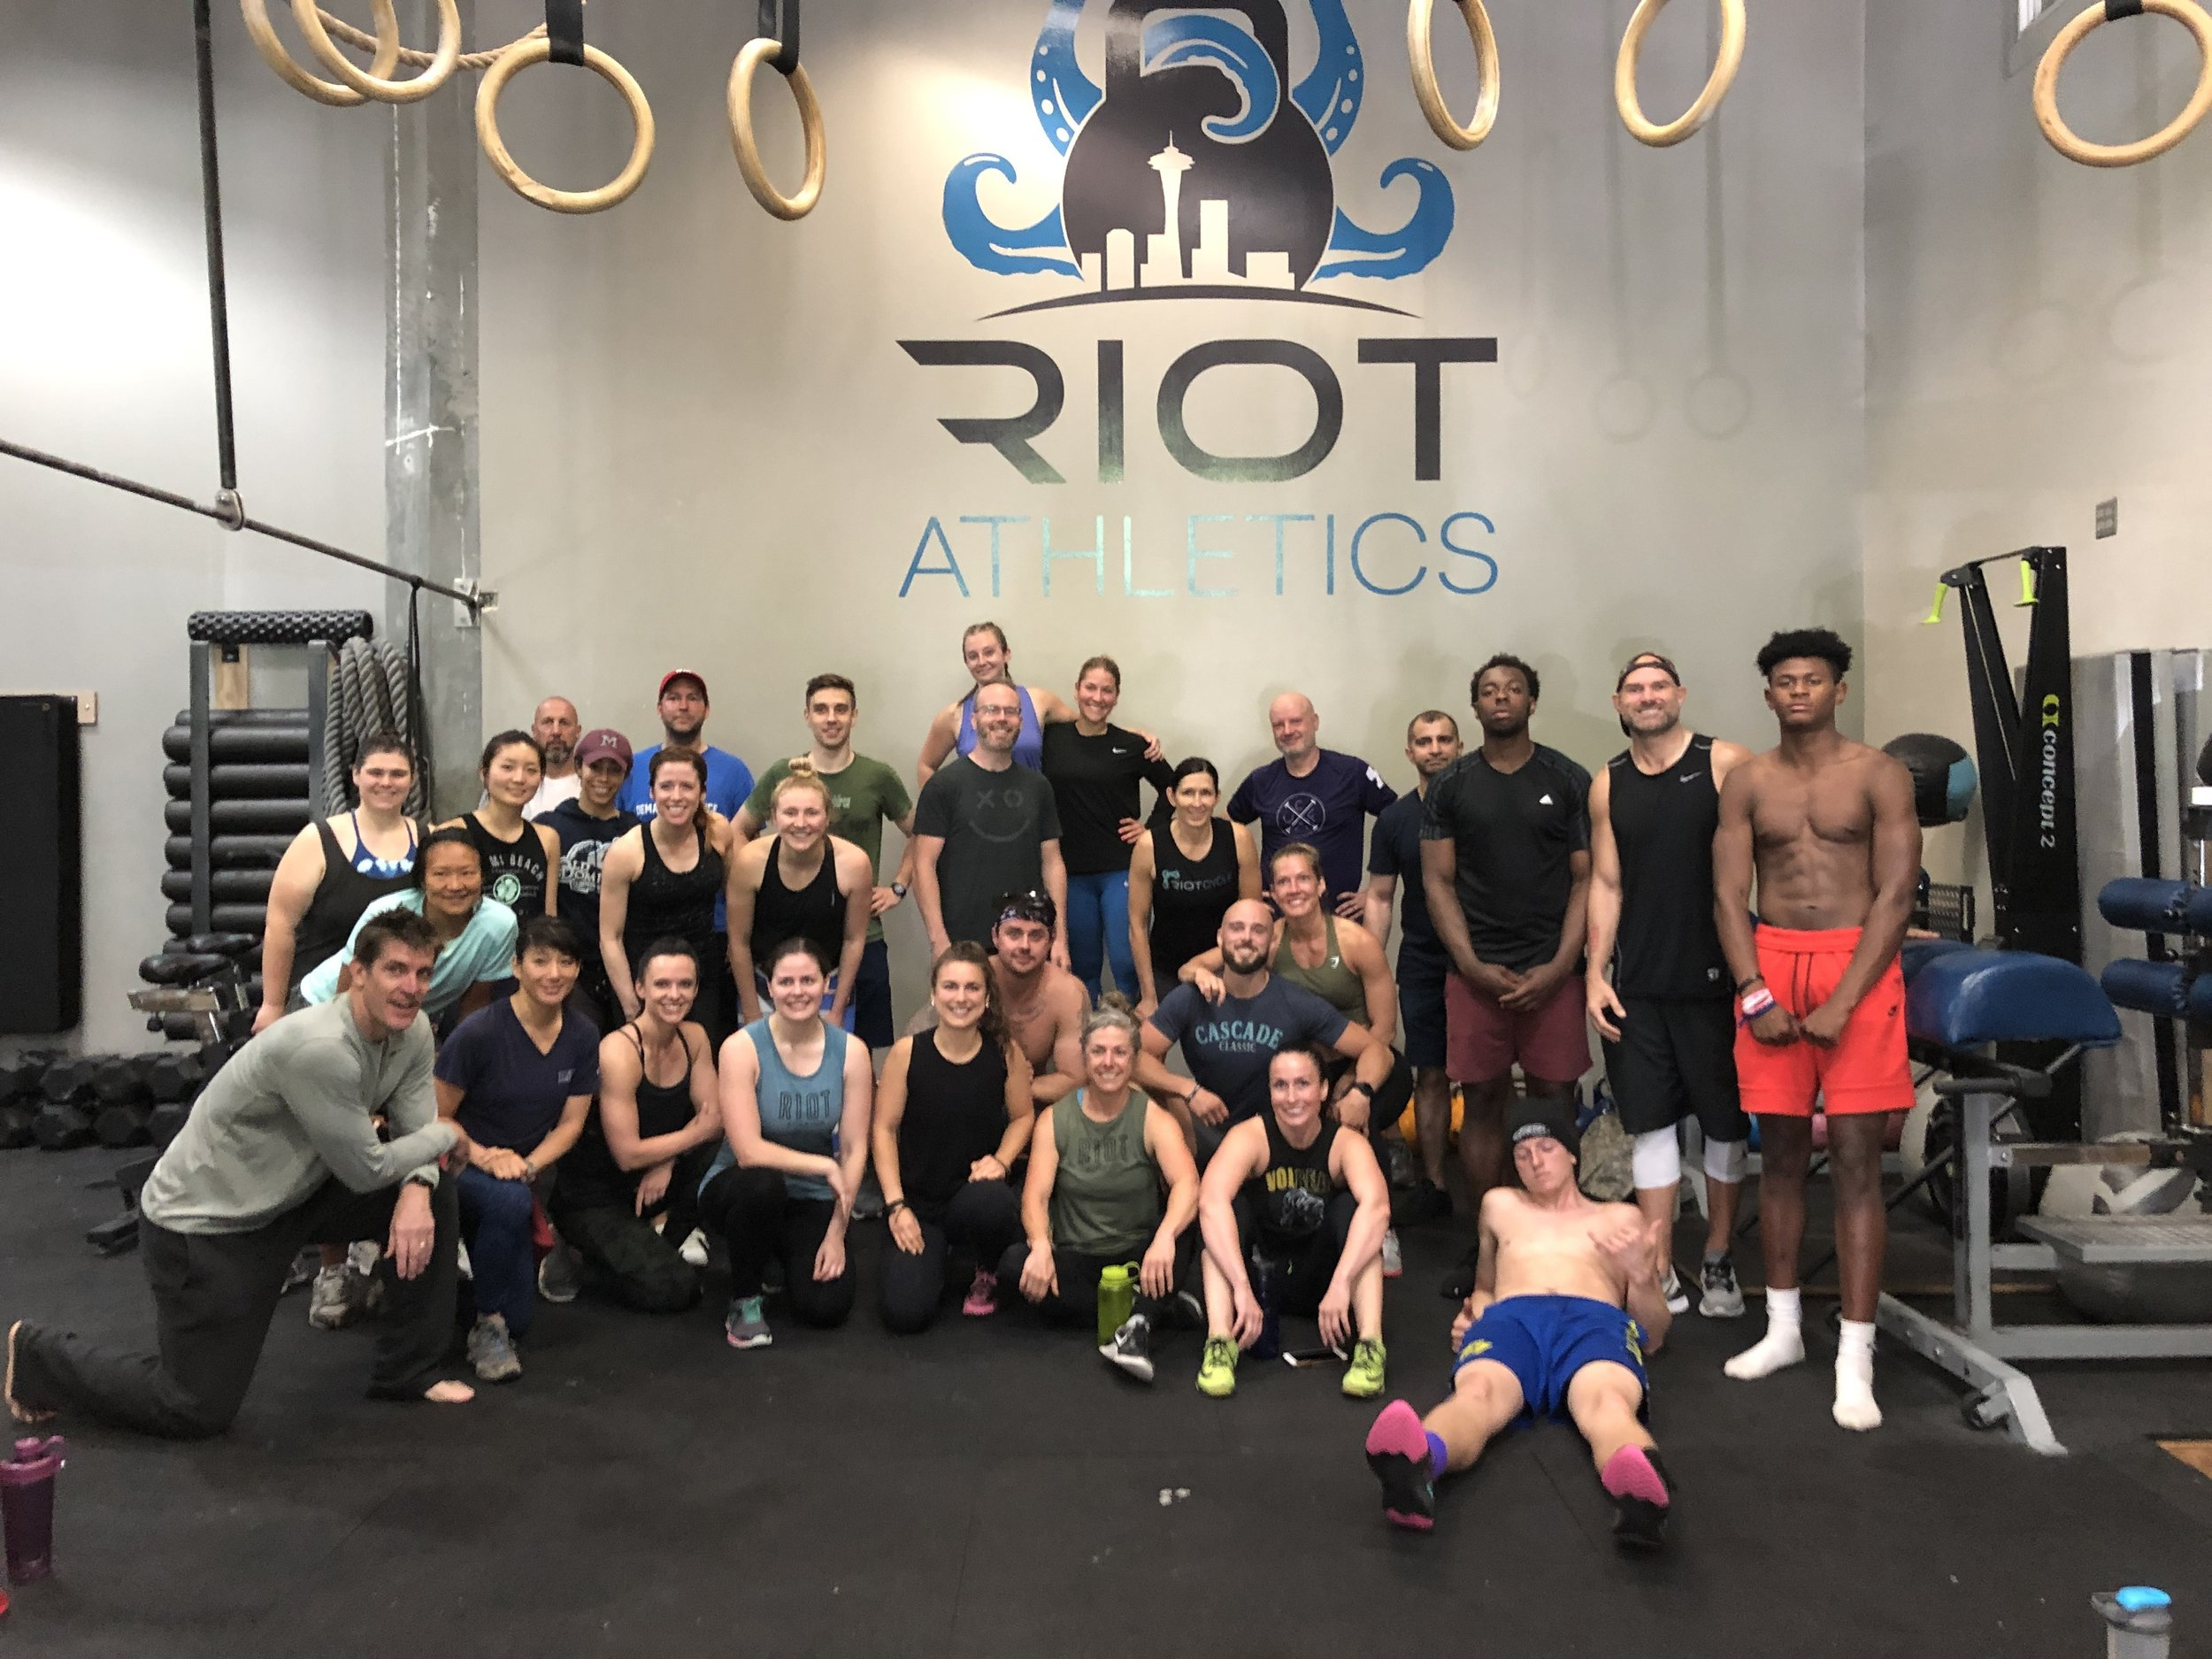 Our Riot crew post Murph/Cycle on Memorial Day. Great job everyone!